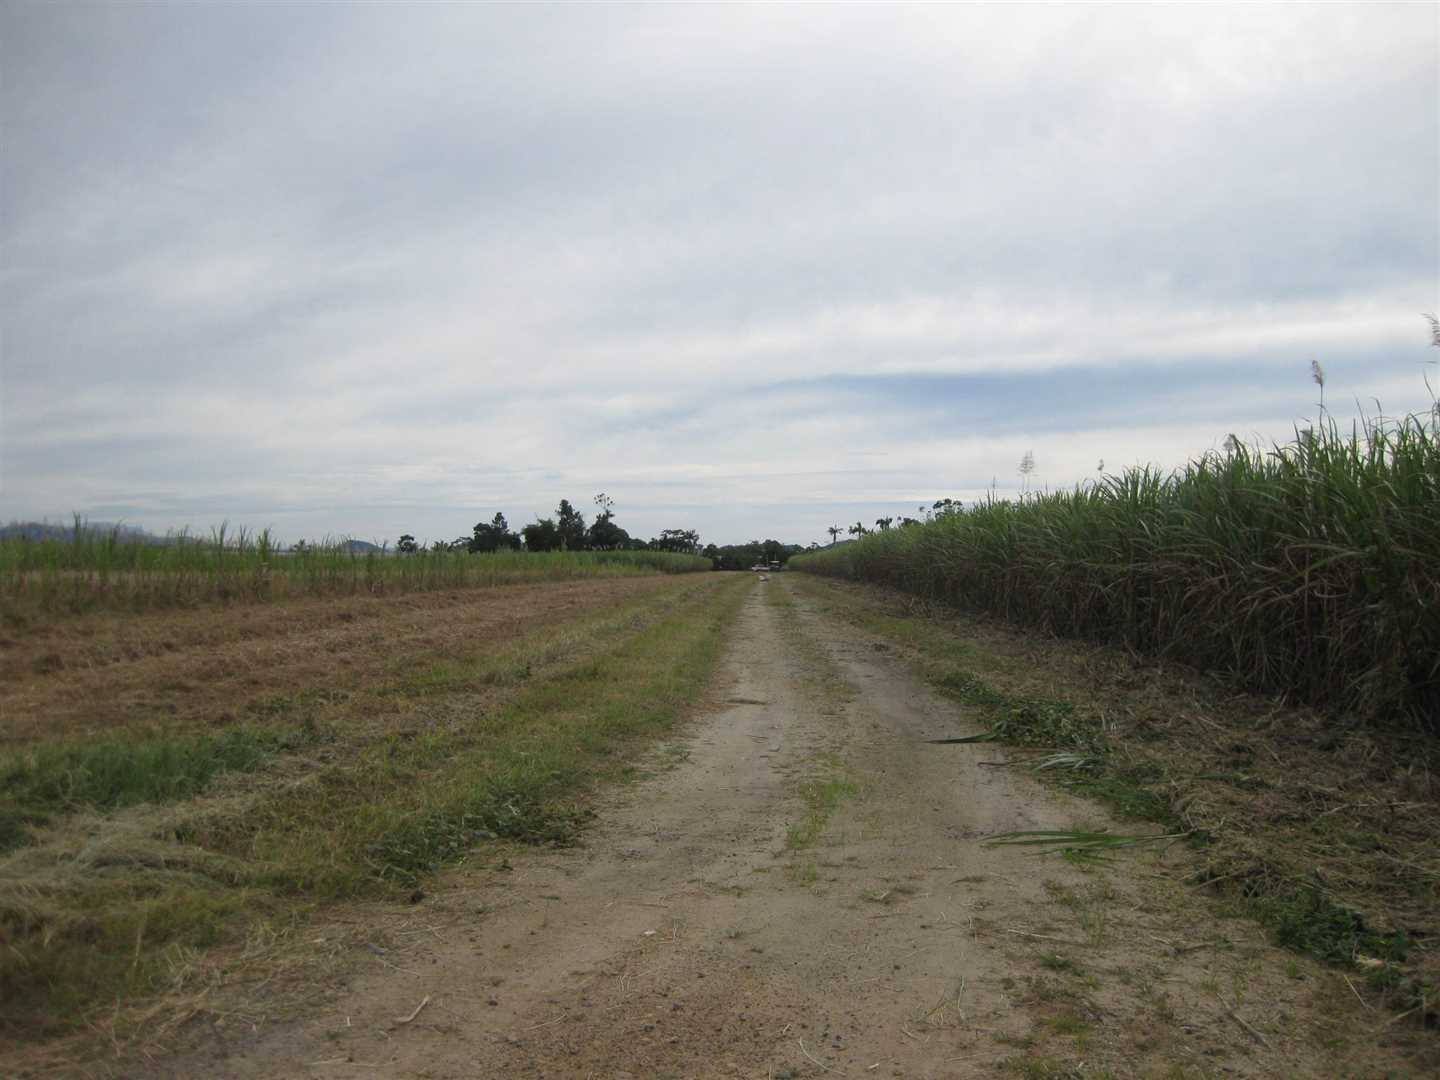 View of part of property, photo 1 (cane crop excluded)